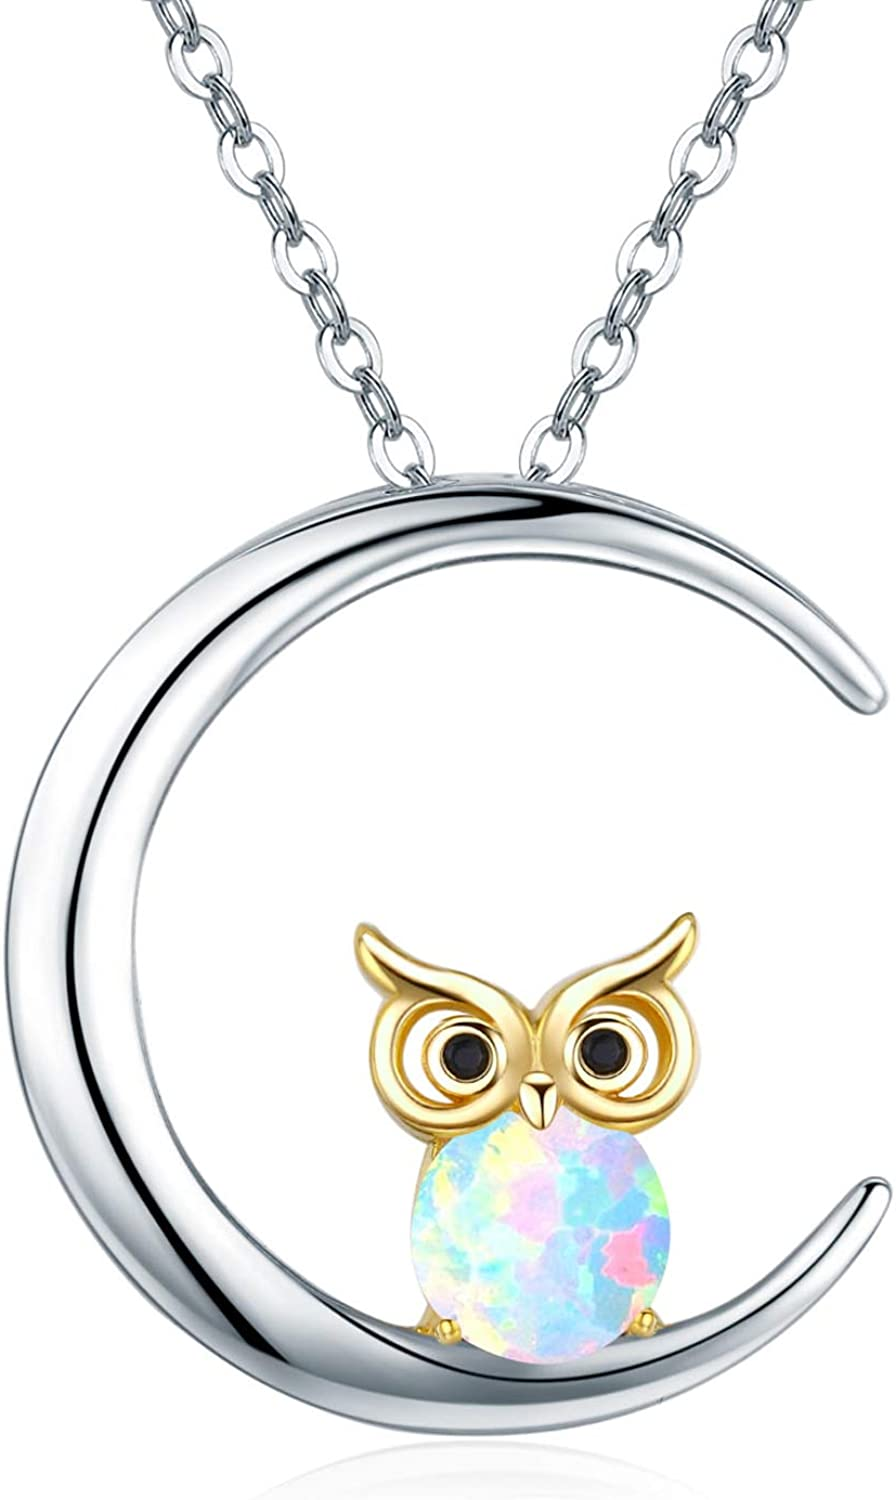 Rose Gold White Opal Owl in Heart Necklace; Rose Gold Opal Owl Charm; 925 Opal Owl Jewelry; White Opal Owl Heart Necklace Infinity Close